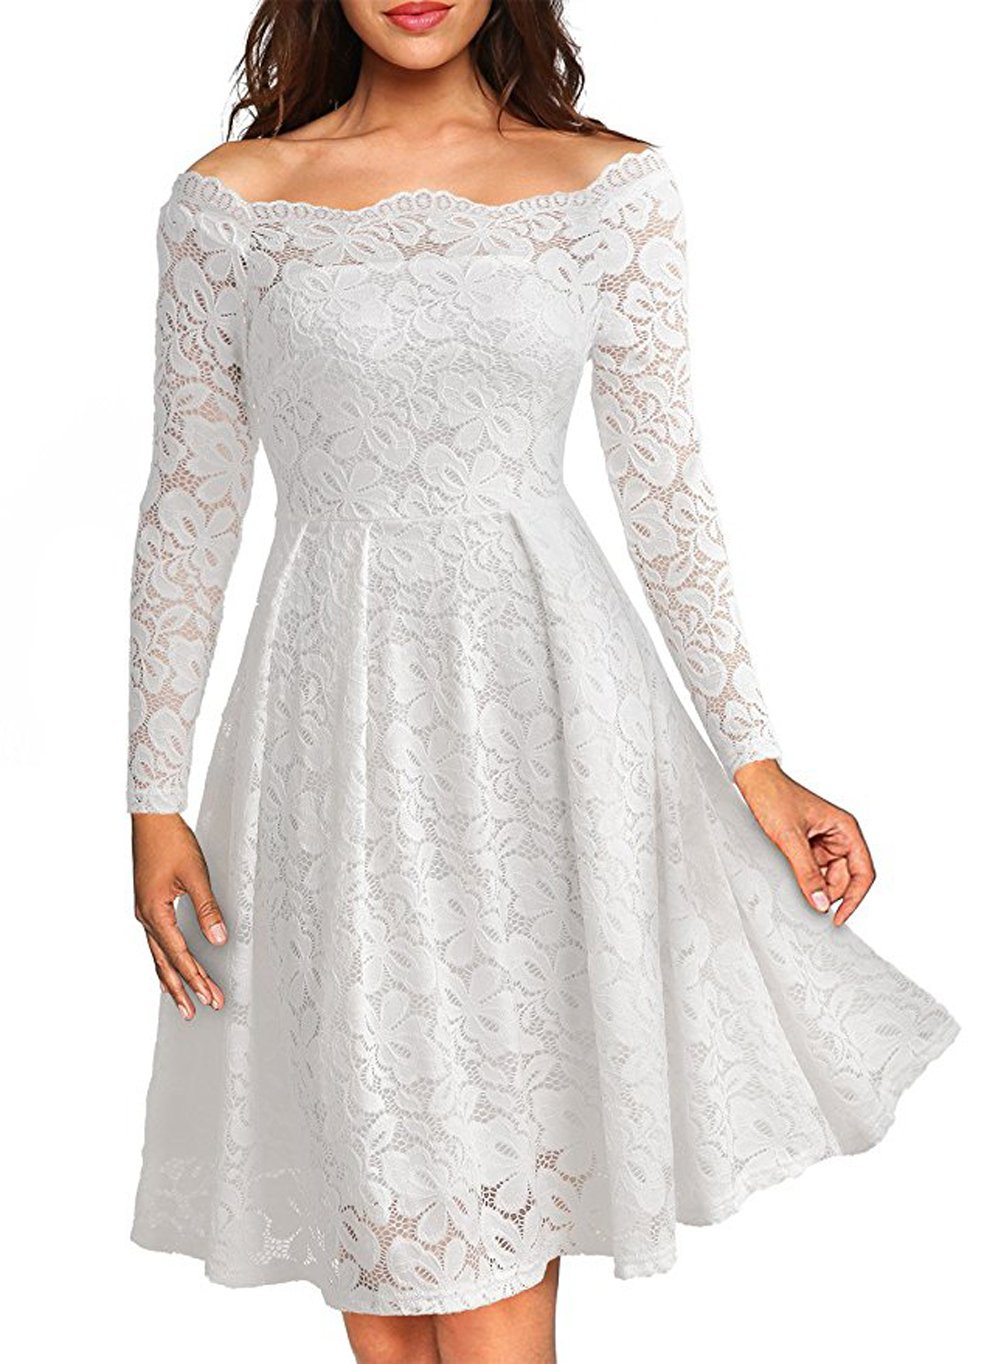 Women's Off the Shoulder Lace Mother of the Bride Dress Formal Gown Knee Length QN001